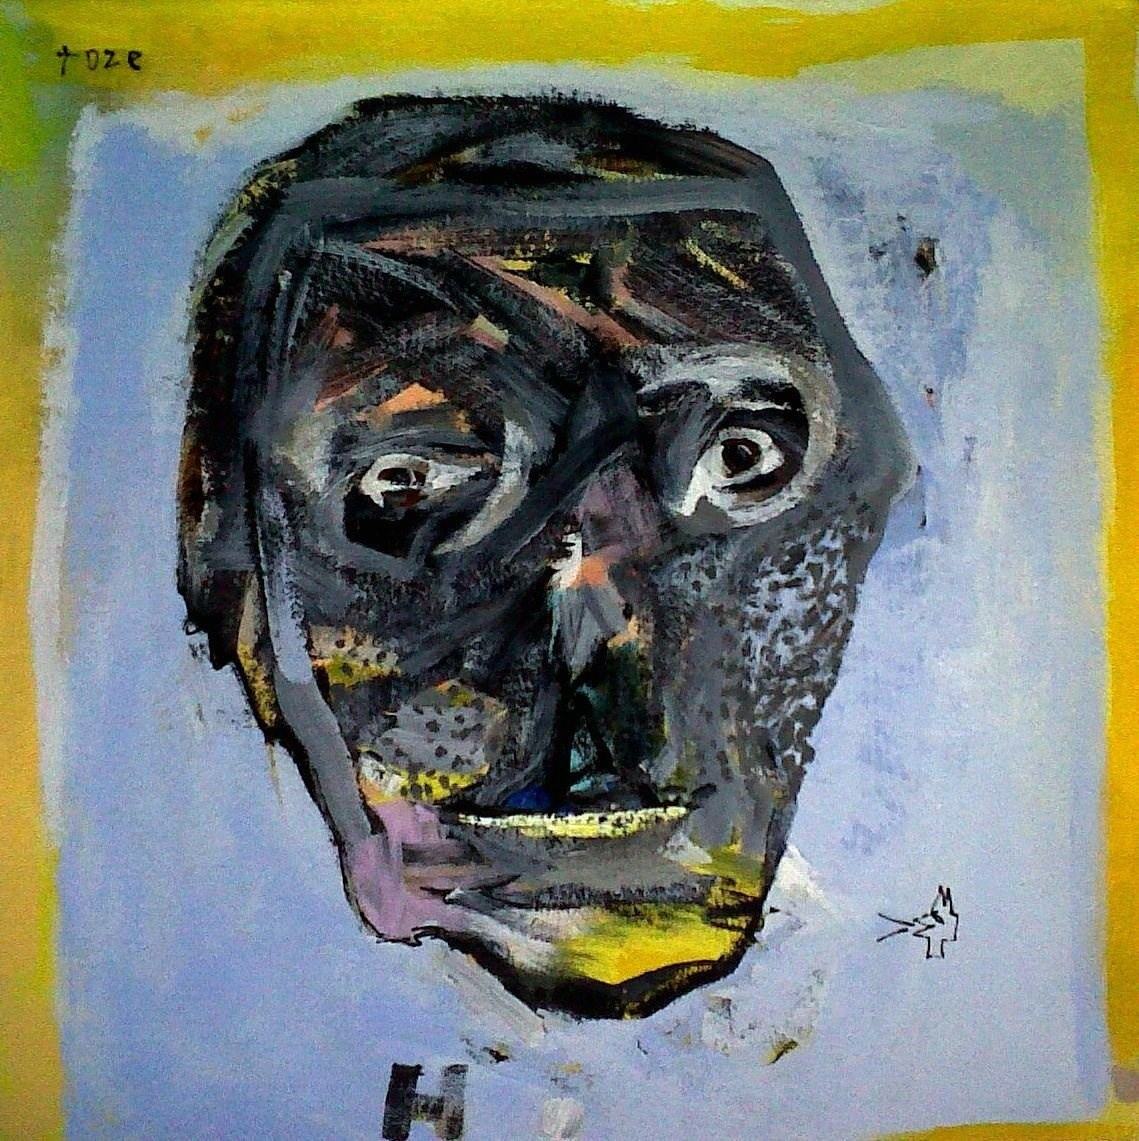 Black Head, original Human Figure Acrylic Painting by Toze Figueiredo